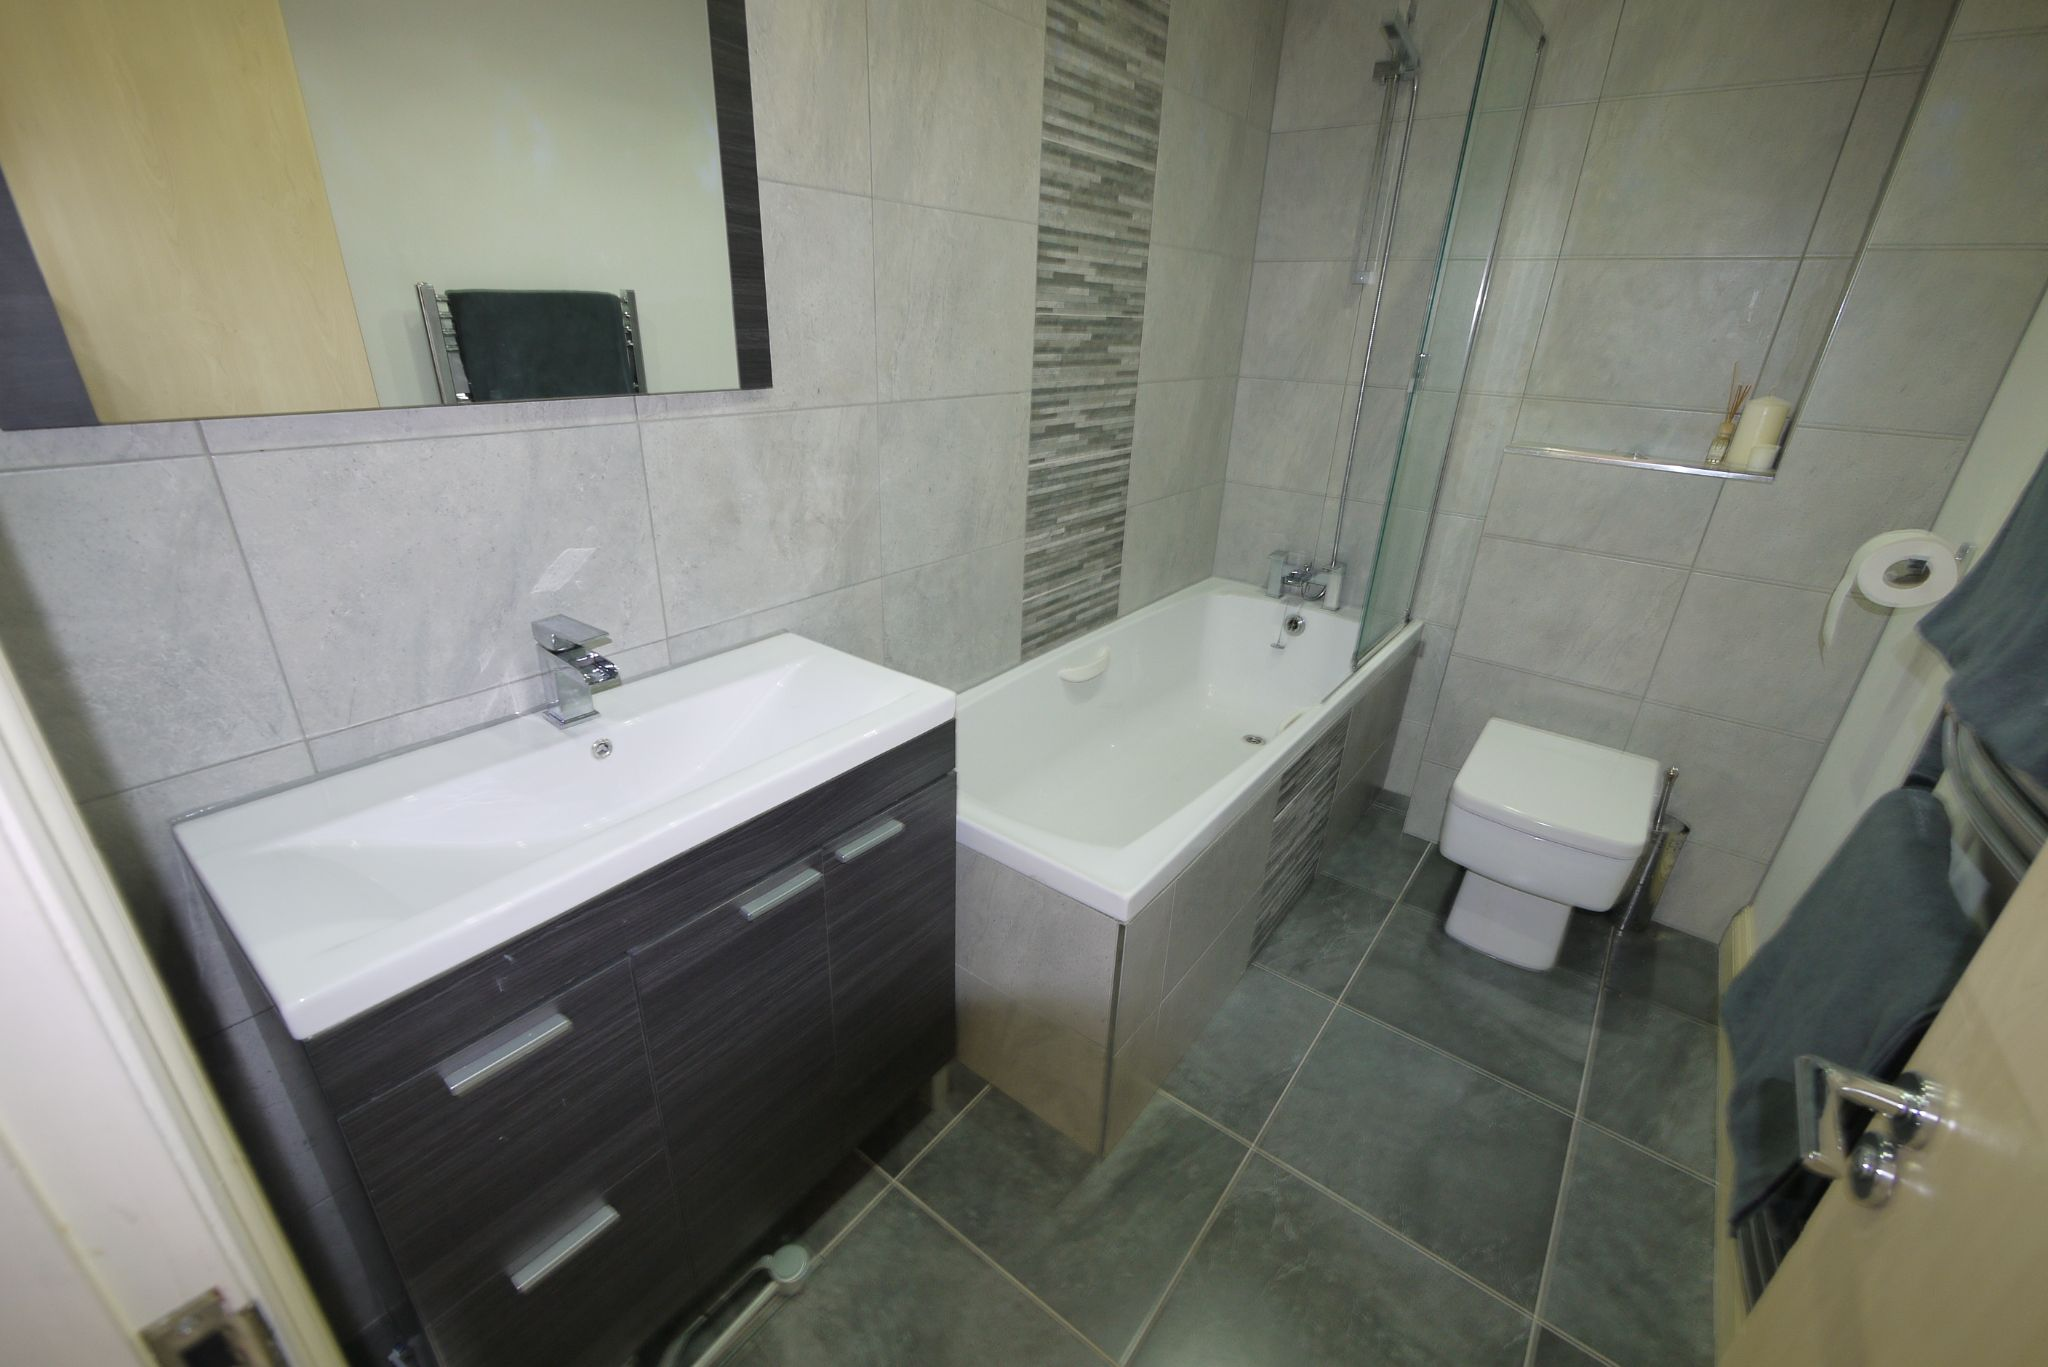 4 bedroom town house SSTC in Brighouse - Bathroom.